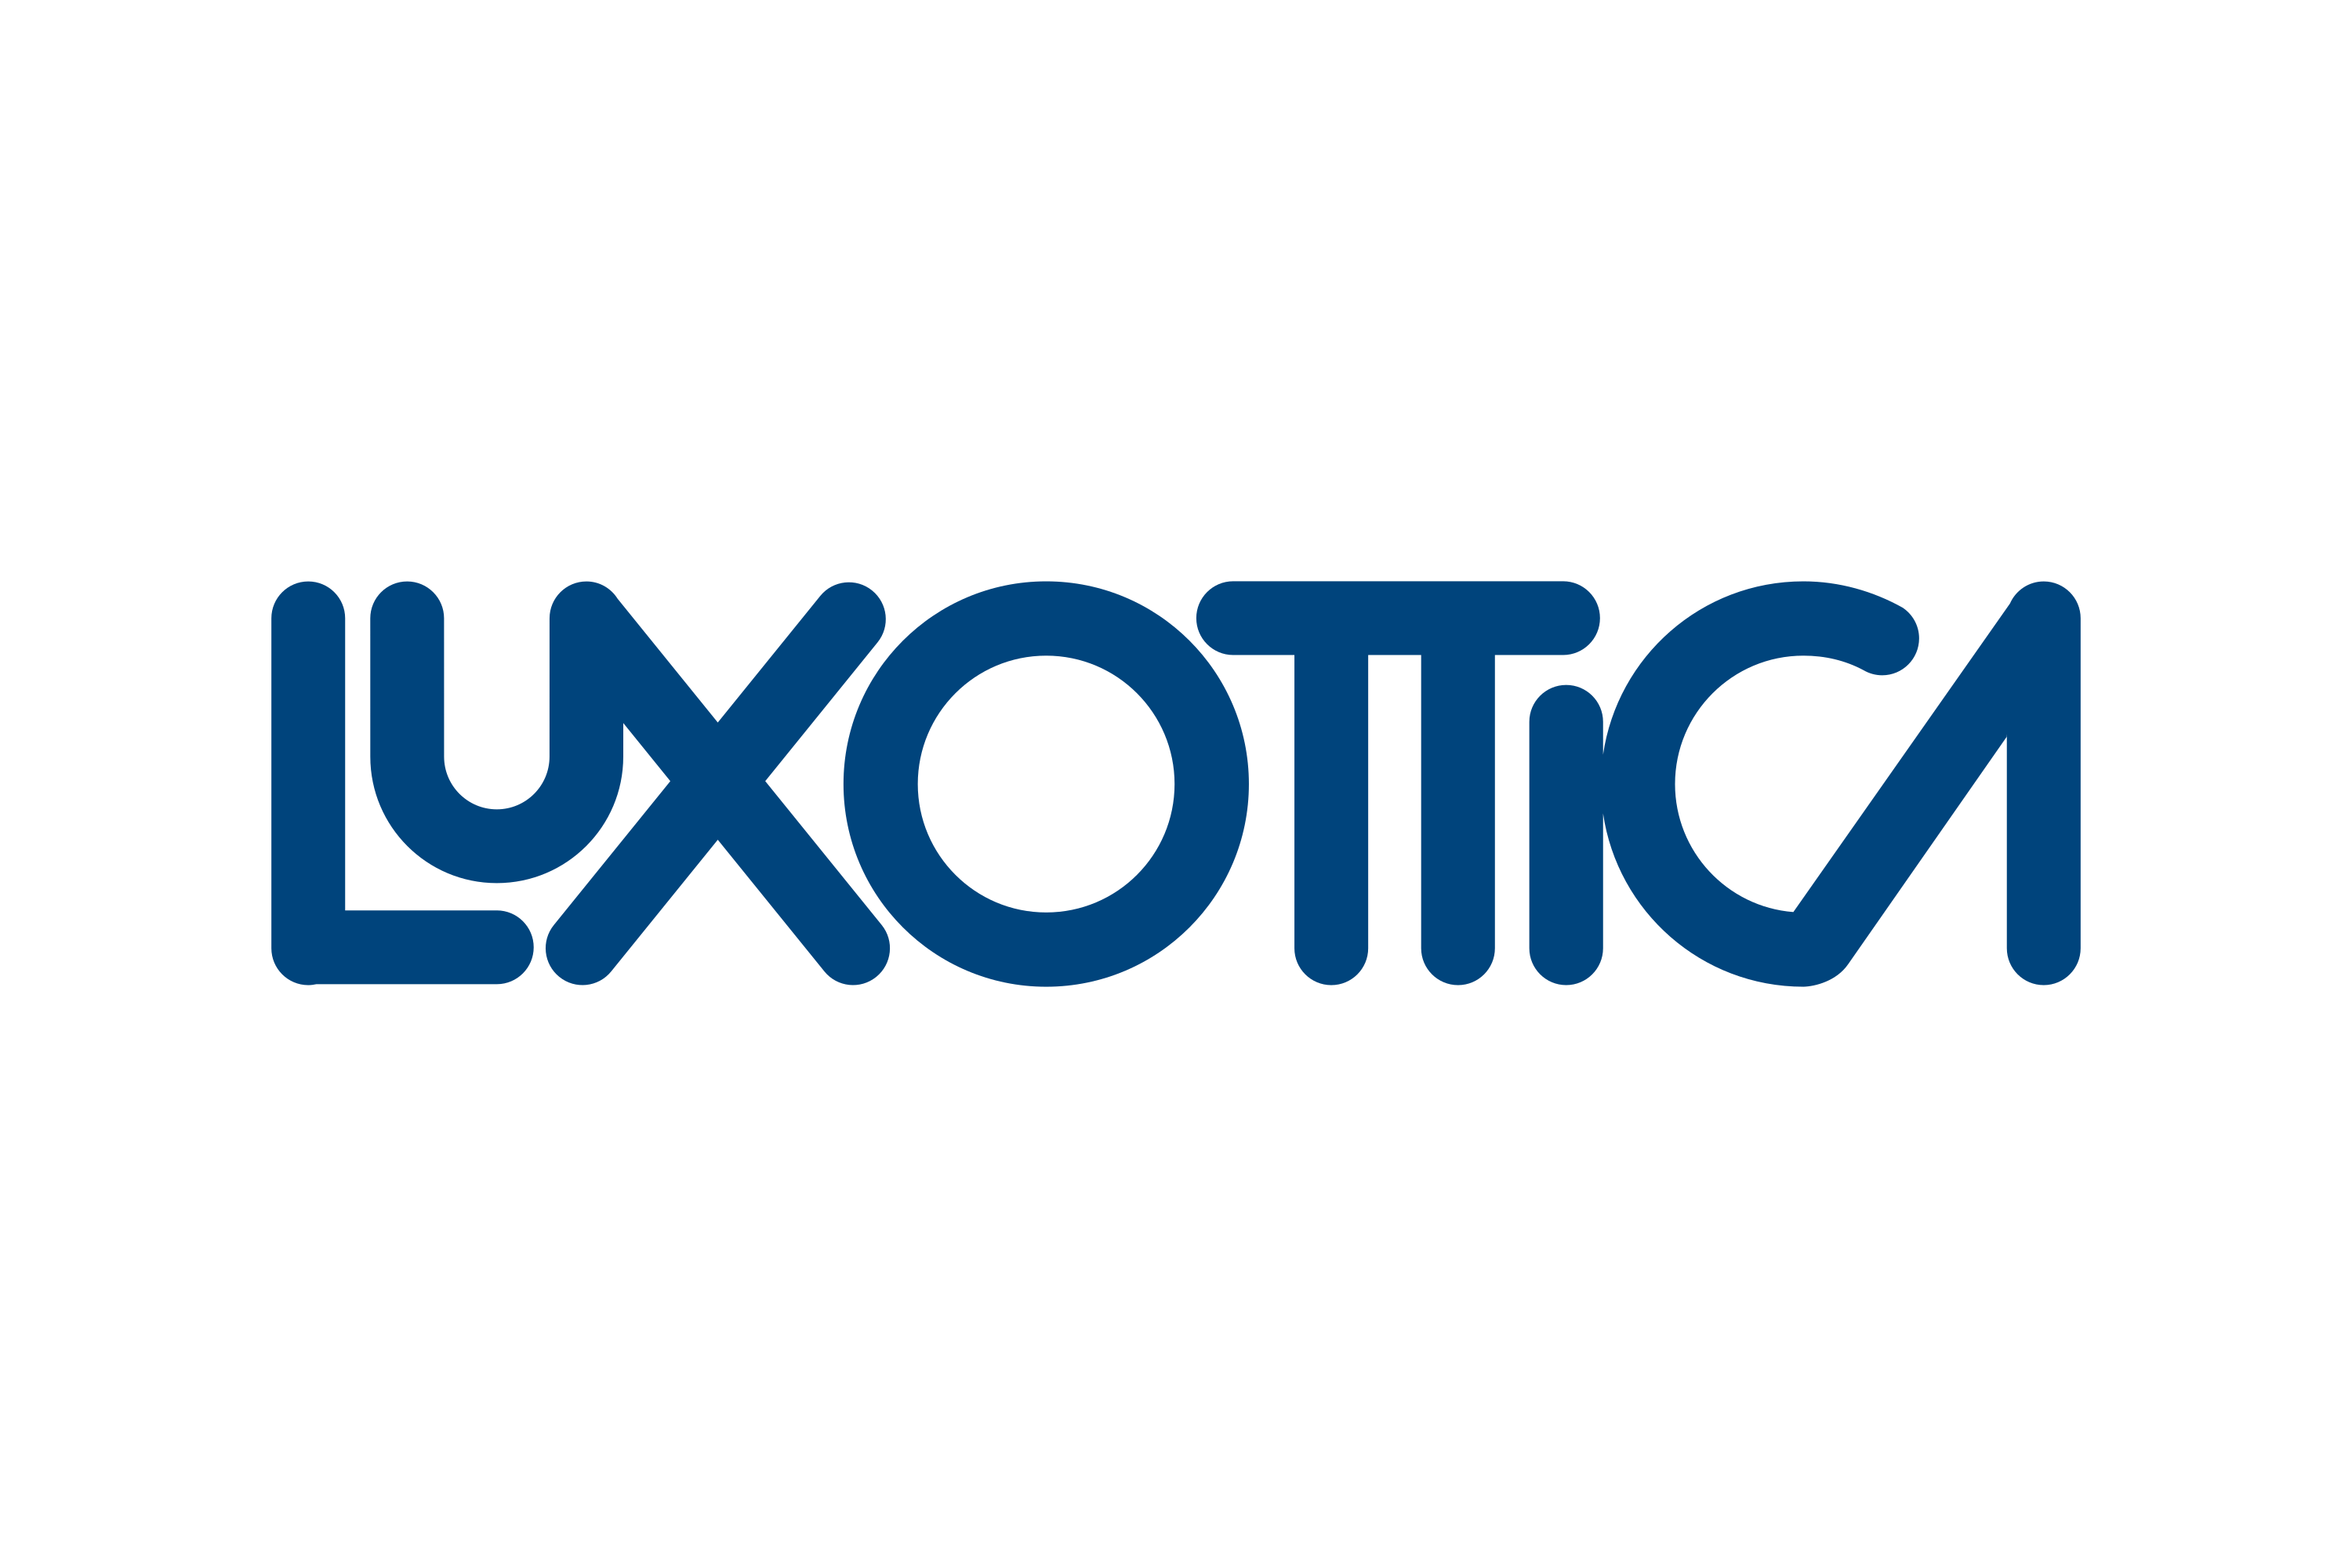 Download Luxottica Logo in SVG Vector or PNG File Format - Logo.wine